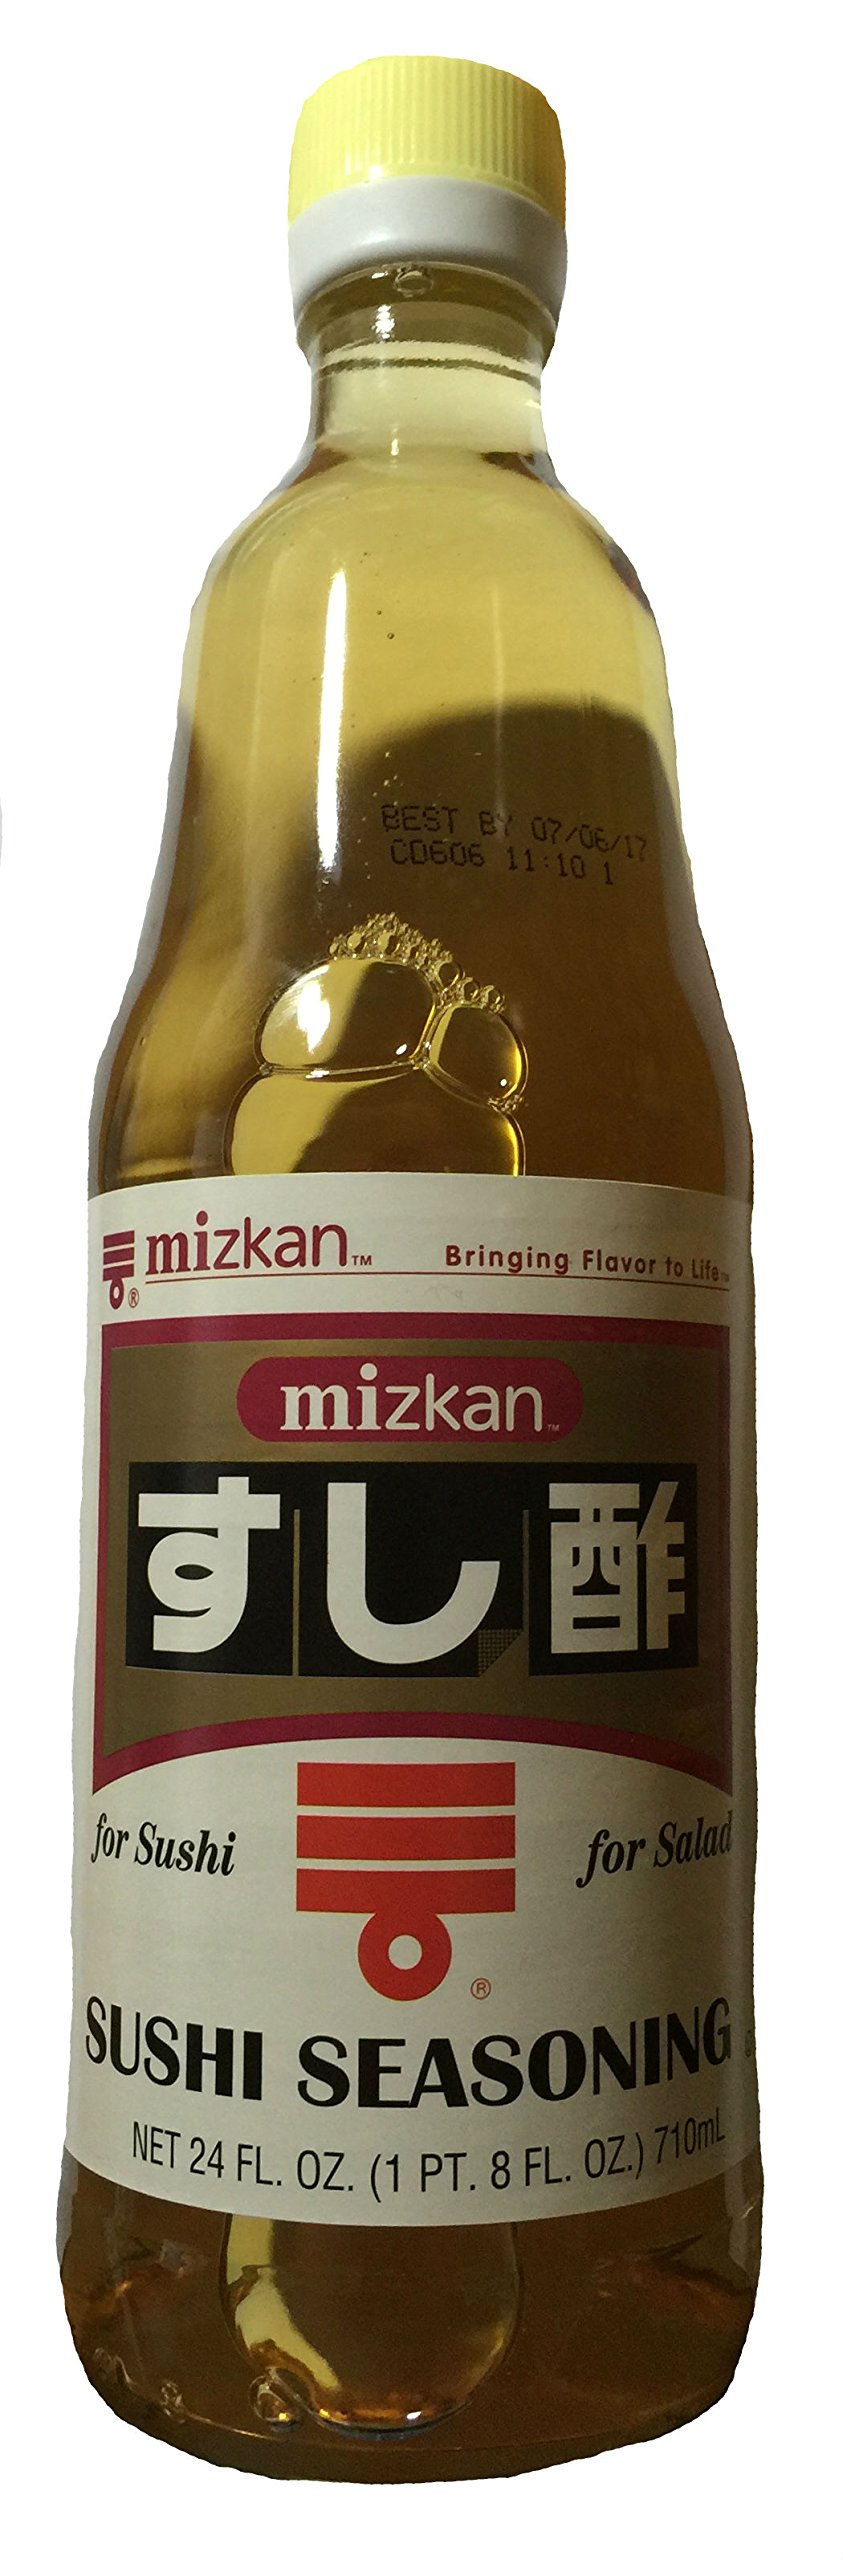 Mizkan Vinegar Sushi Seasoning for Sushi or Salad - 24 fl oz (710ml)